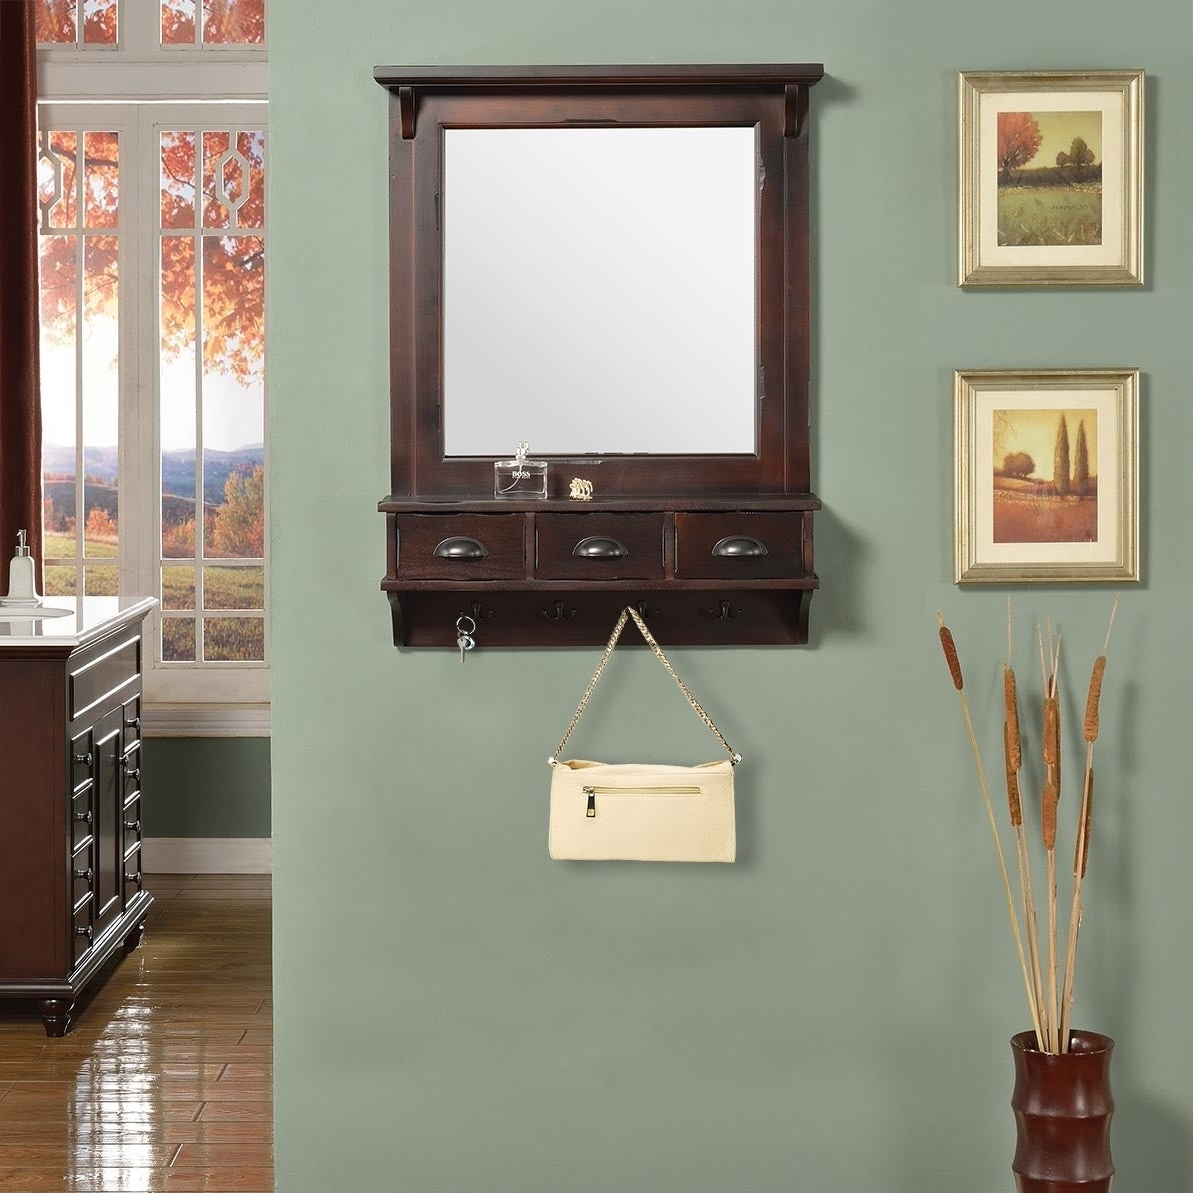 Most Current Brown Wall Mirrors In Bombay Brown Wall Mirror With Drawers And Hooks – A/n (View 18 of 20)